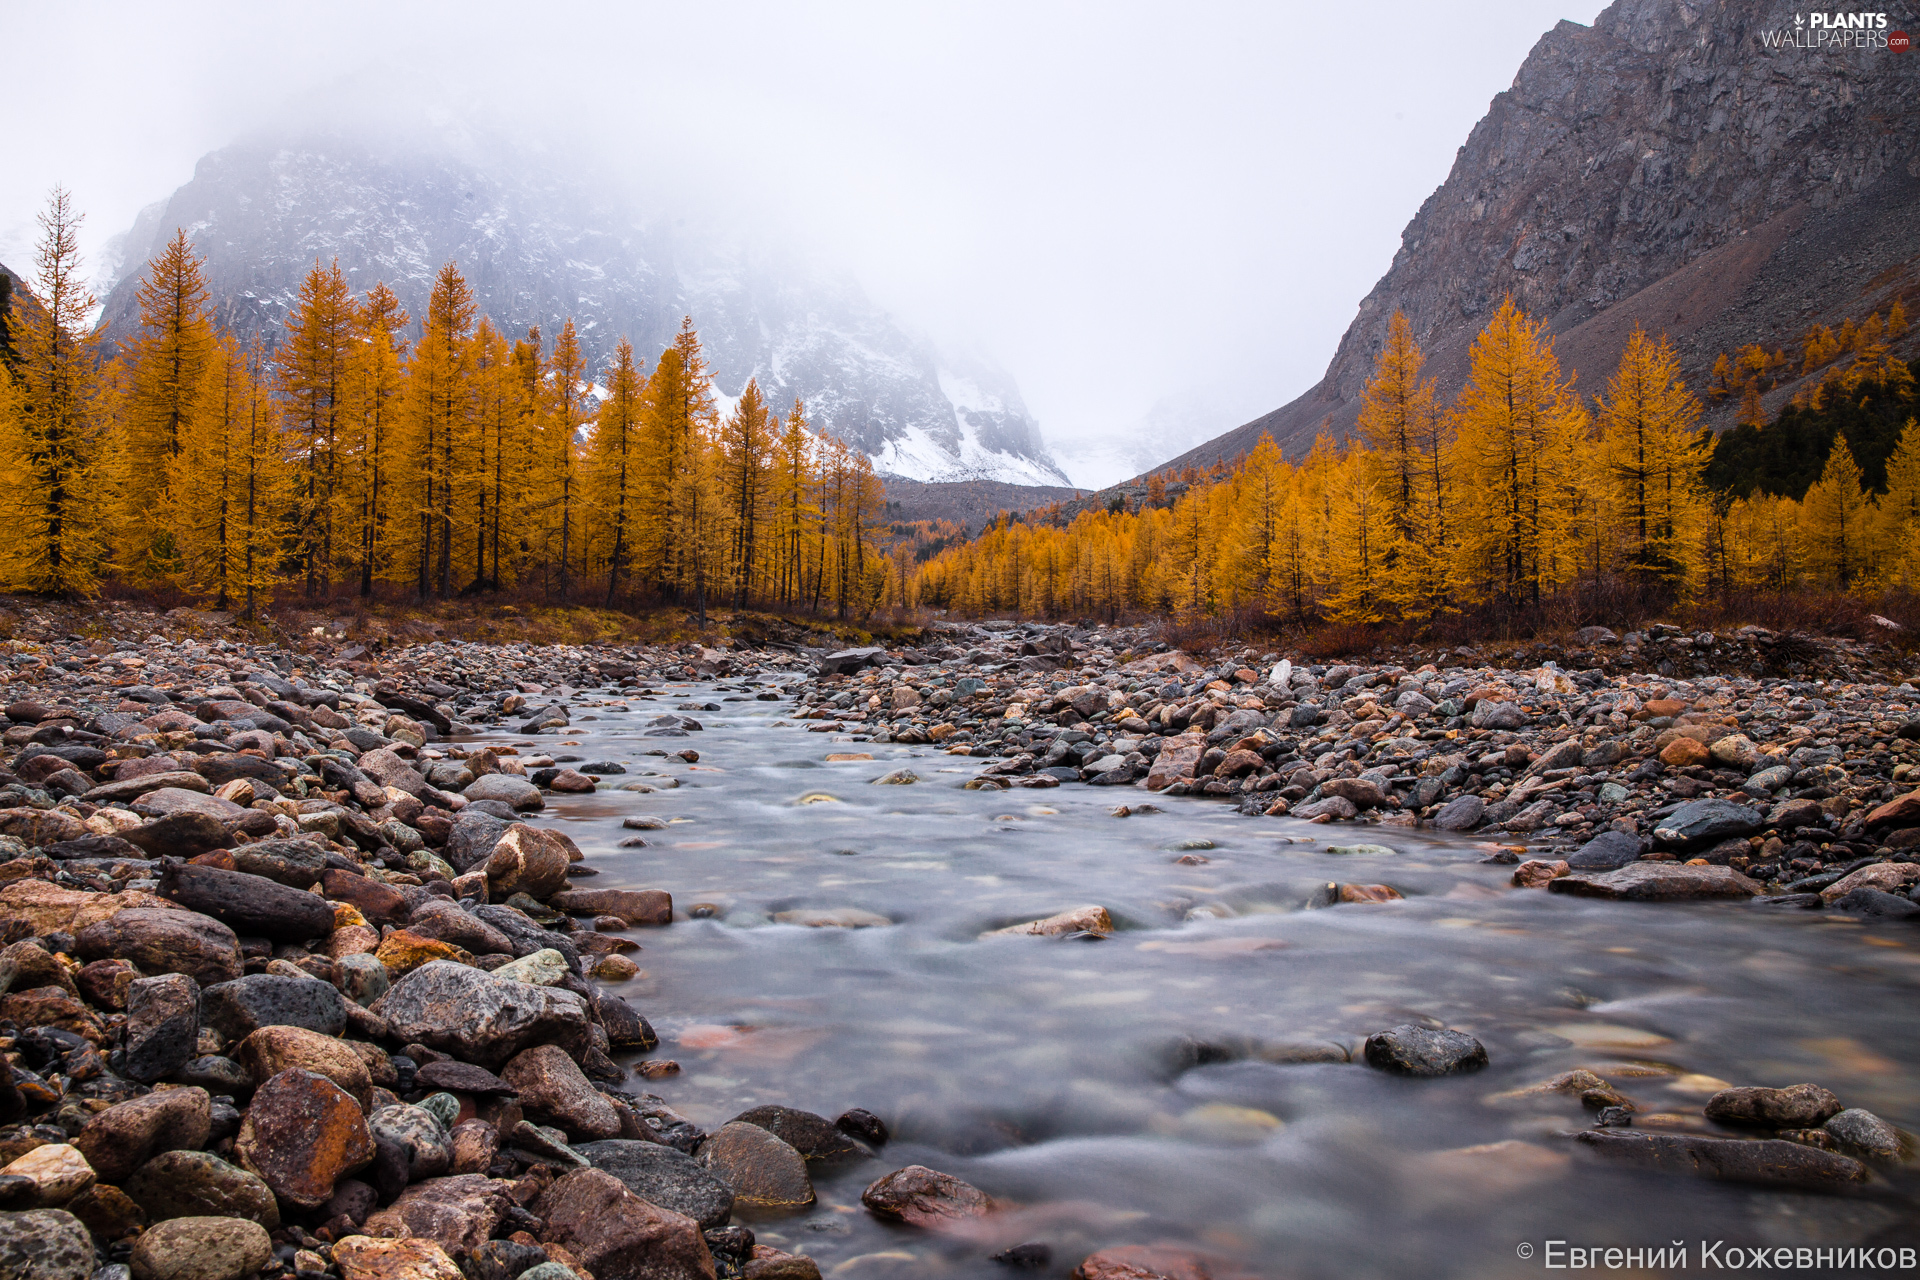 autumn, trees, Russia, viewes, Altai, River, Stones, Mountains